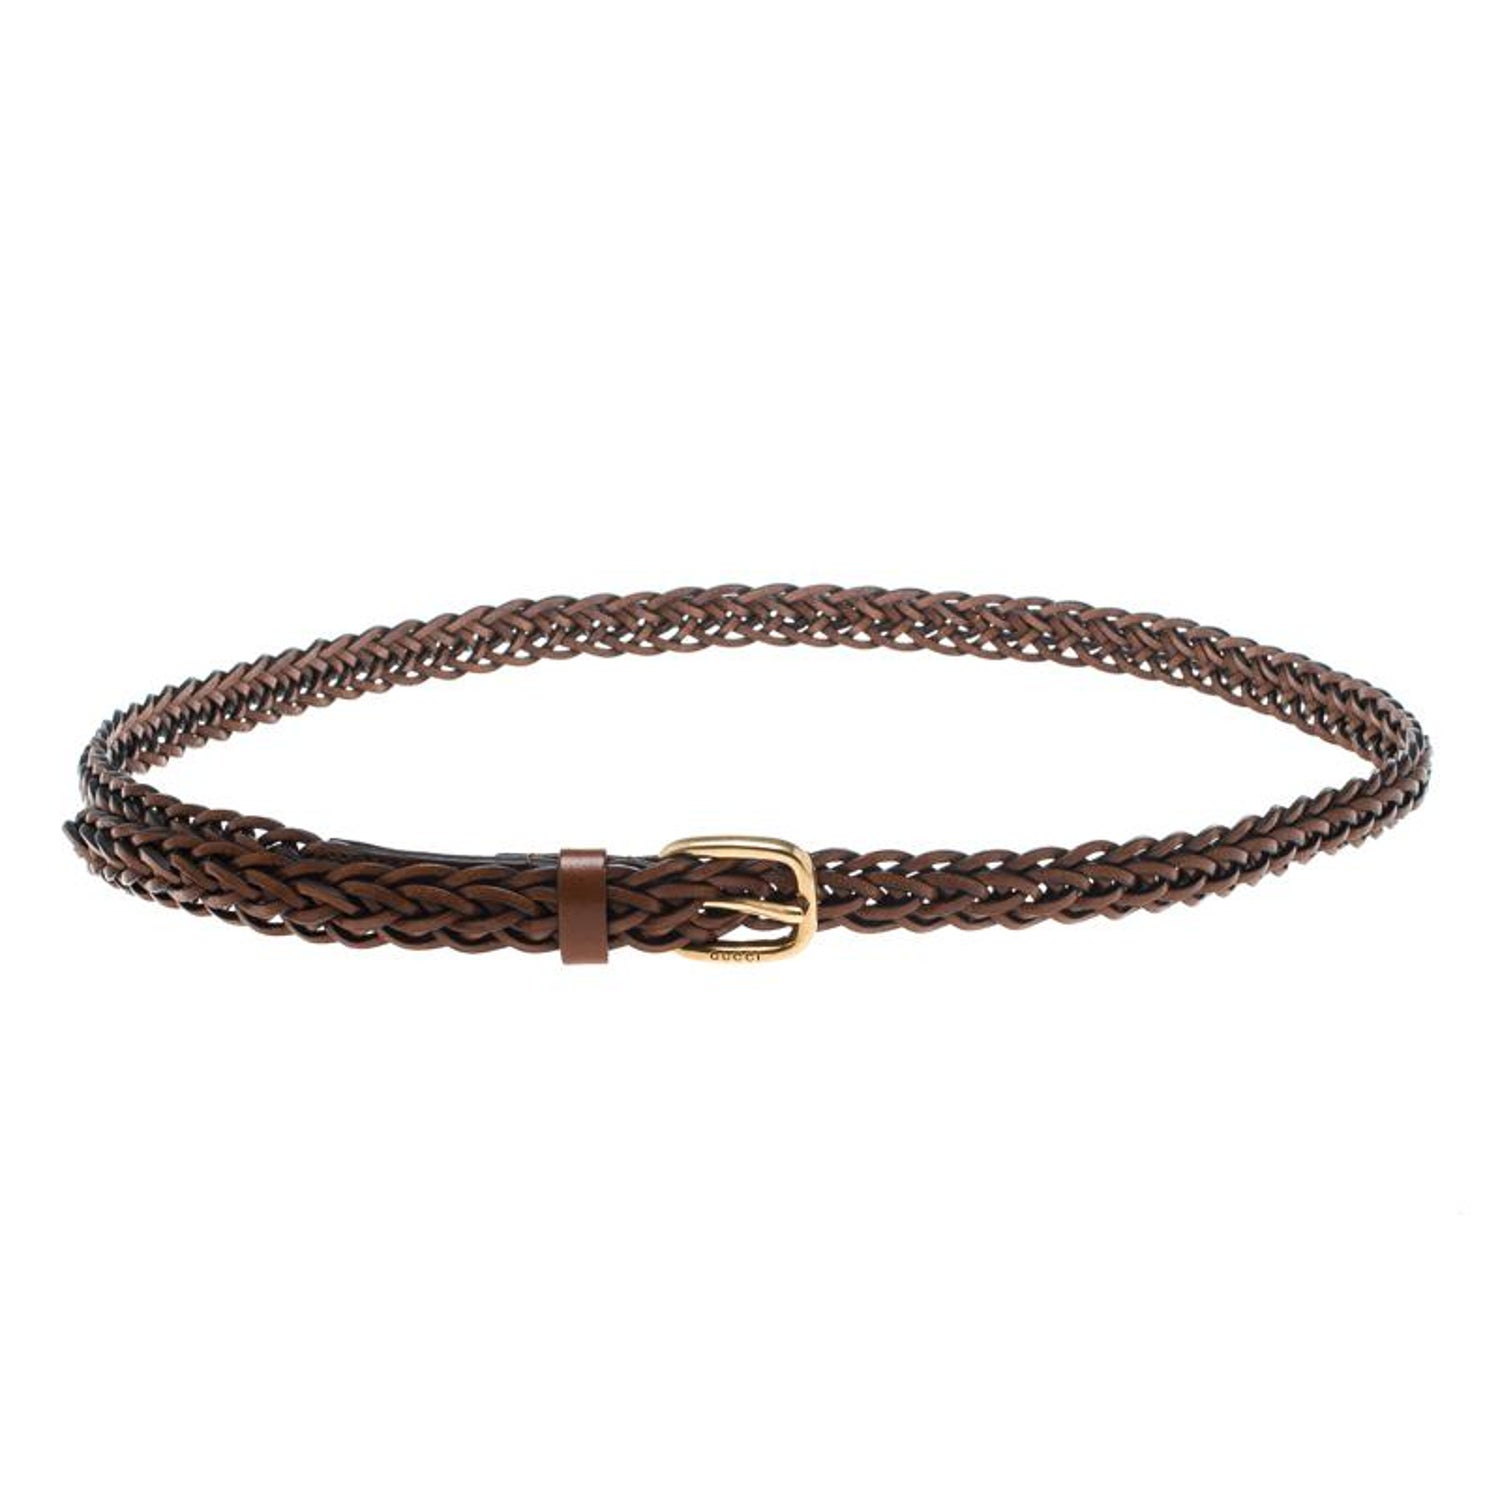 c001d57eb4d Gucci Brown Braided Leather Skinny Belt 85 CM For Sale at 1stdibs